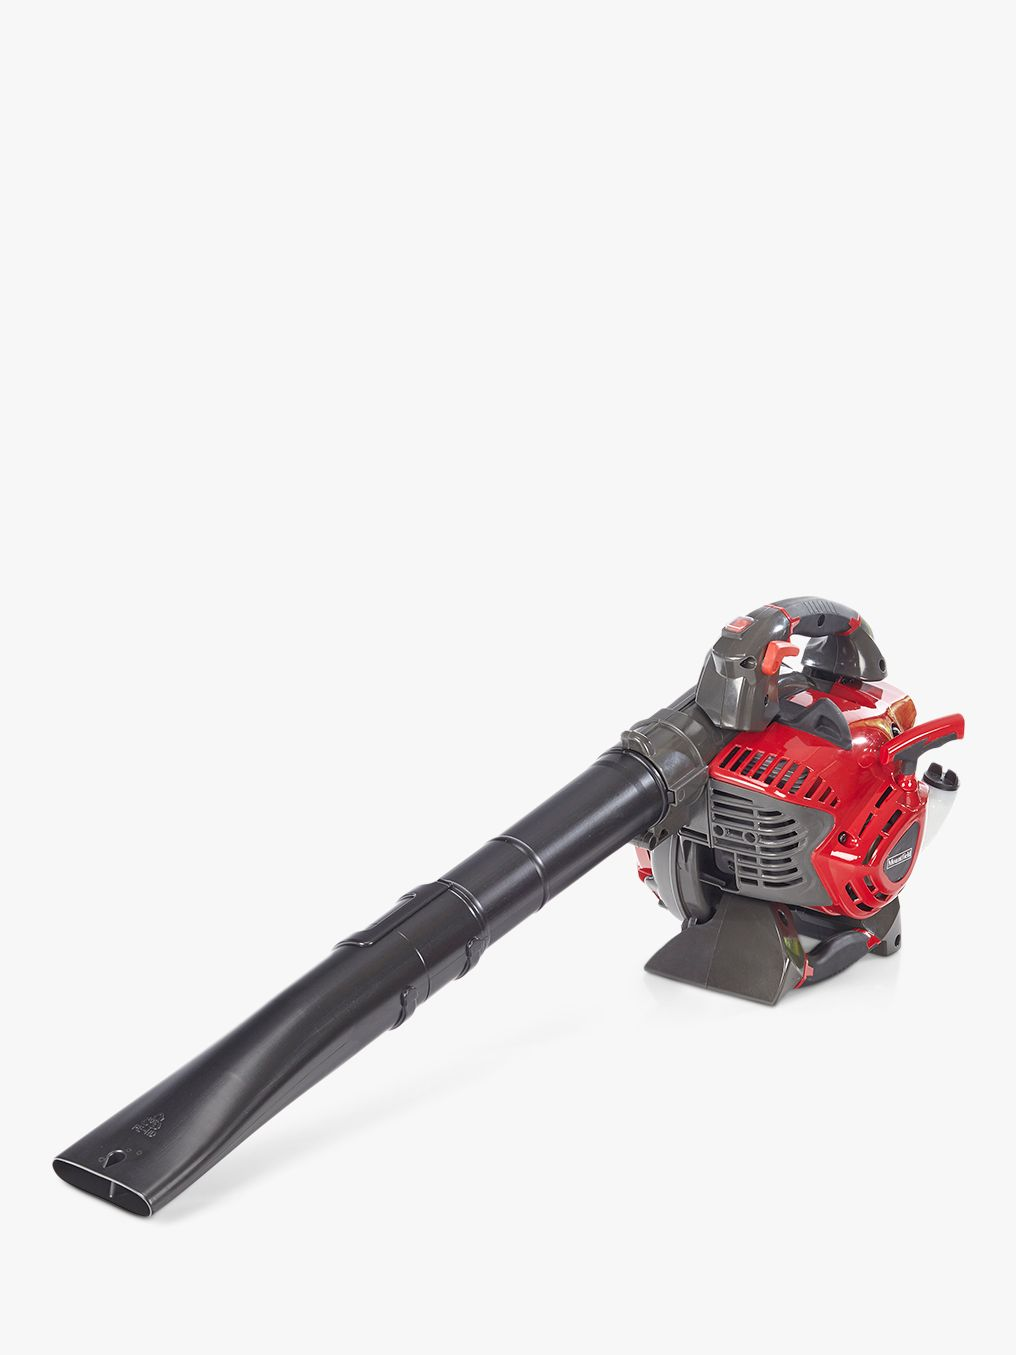 Mountfield Mountfield Petrol-Powered Leaf Blower